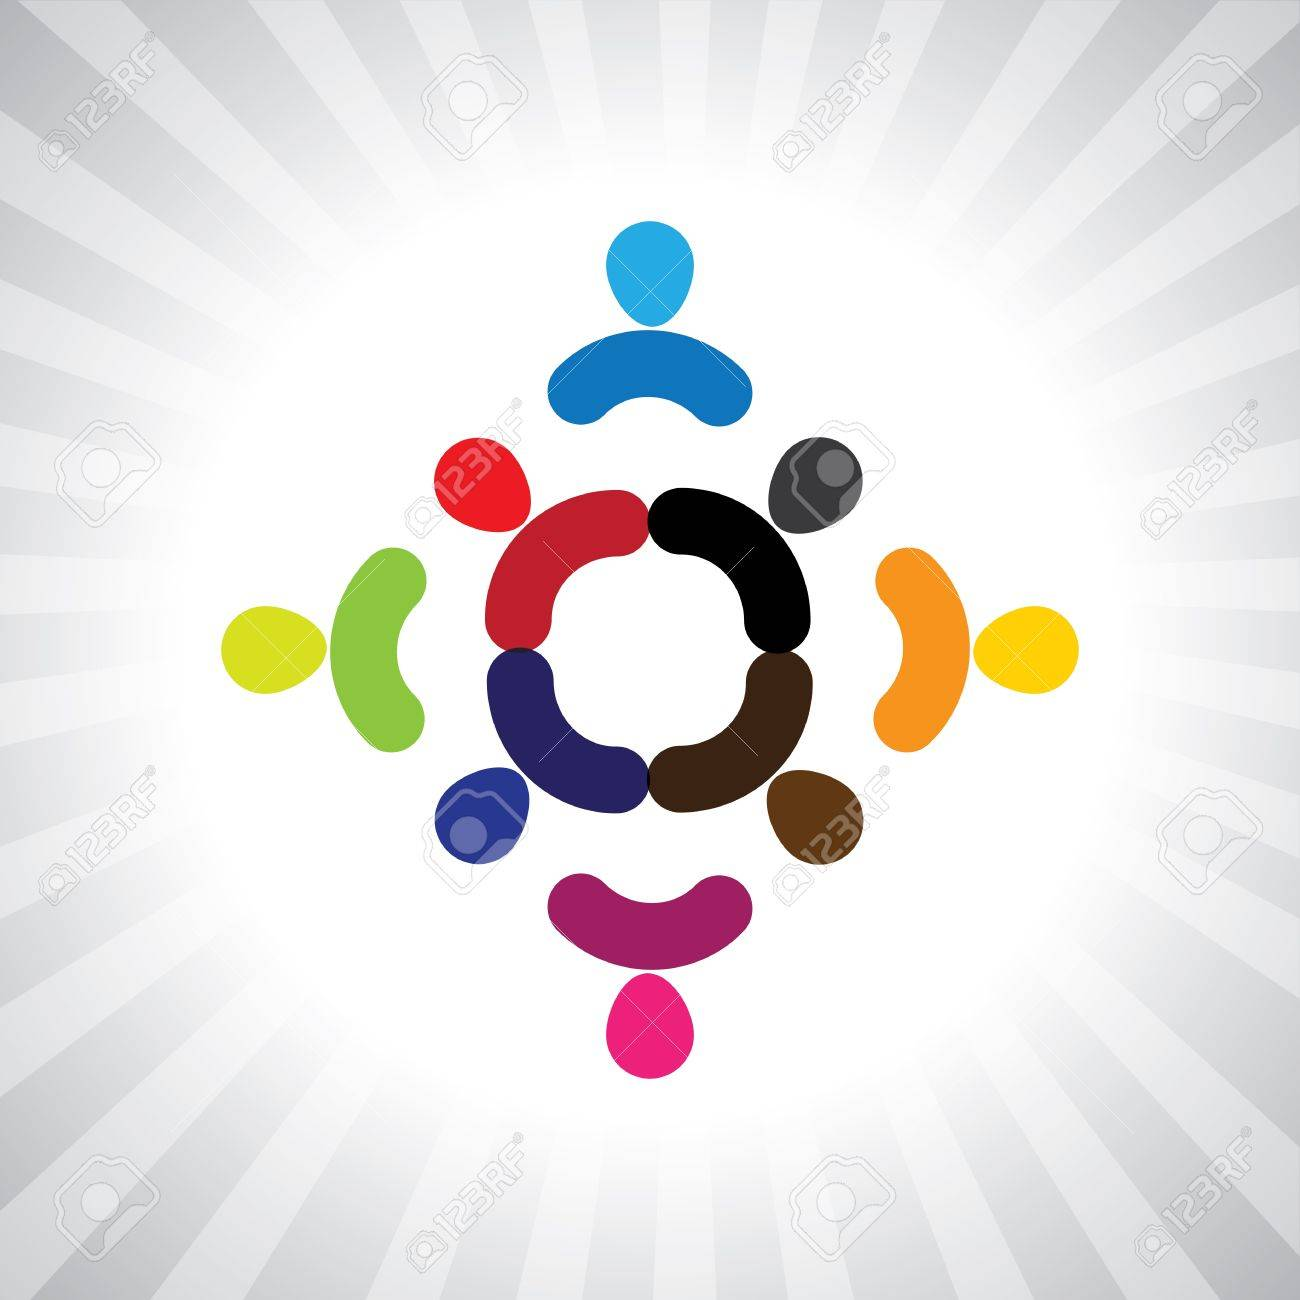 abstract colorful children playing in circle- simple graphic. This illustration can also represent children playing, kids having fun, employee meeting, workers unity & diversity, abstract people Stock Vector - 20787427